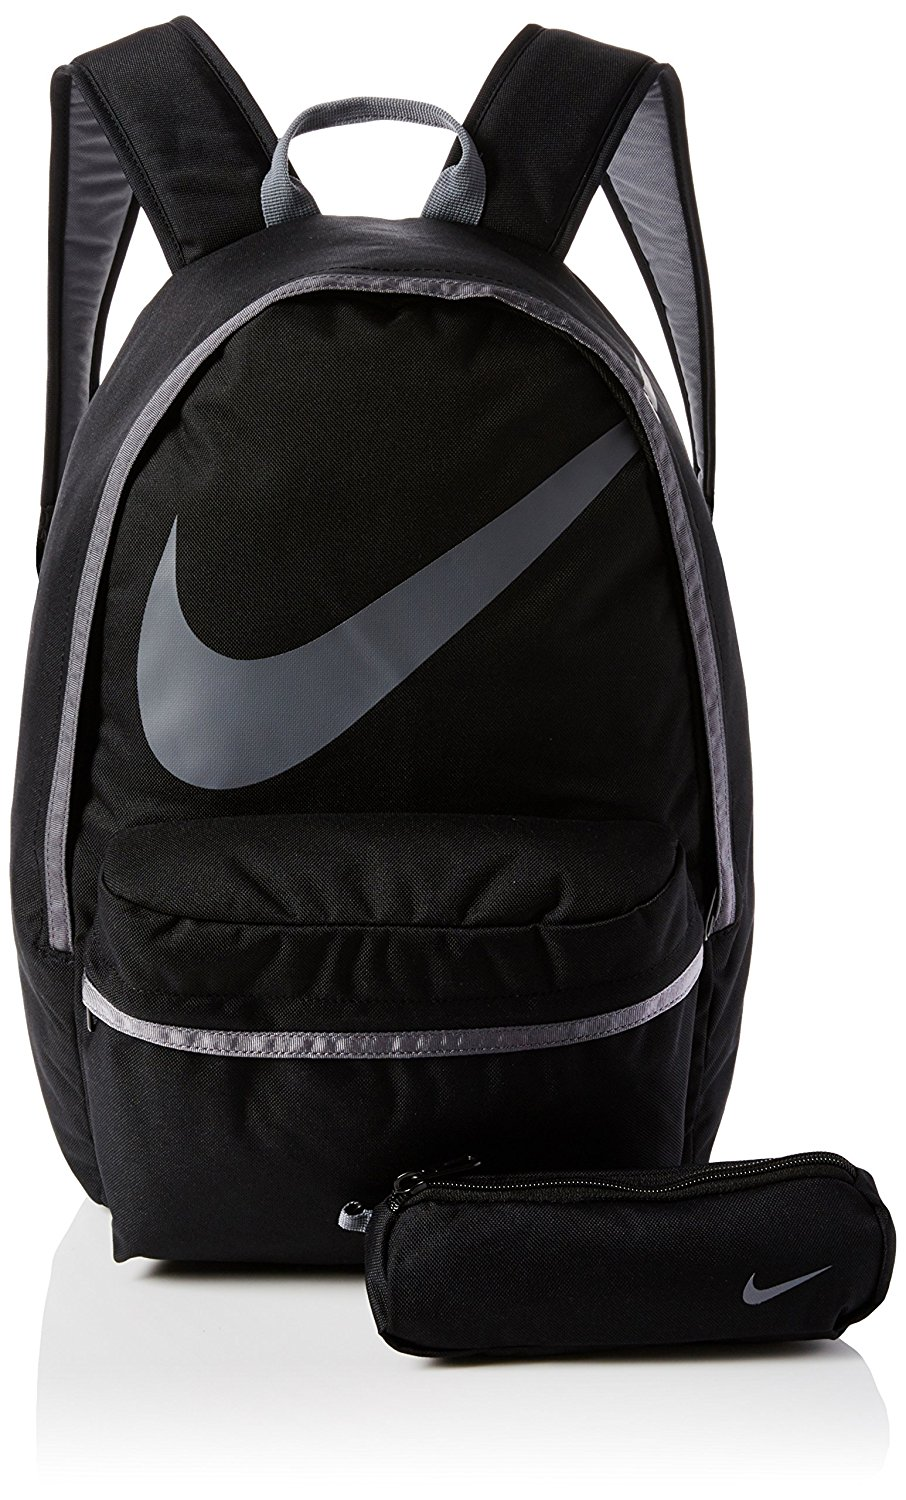 56de9d8e1395 Buy Nike Kids  39  Halfday Back To School Backpack in Cheap Price on  m.alibaba.com